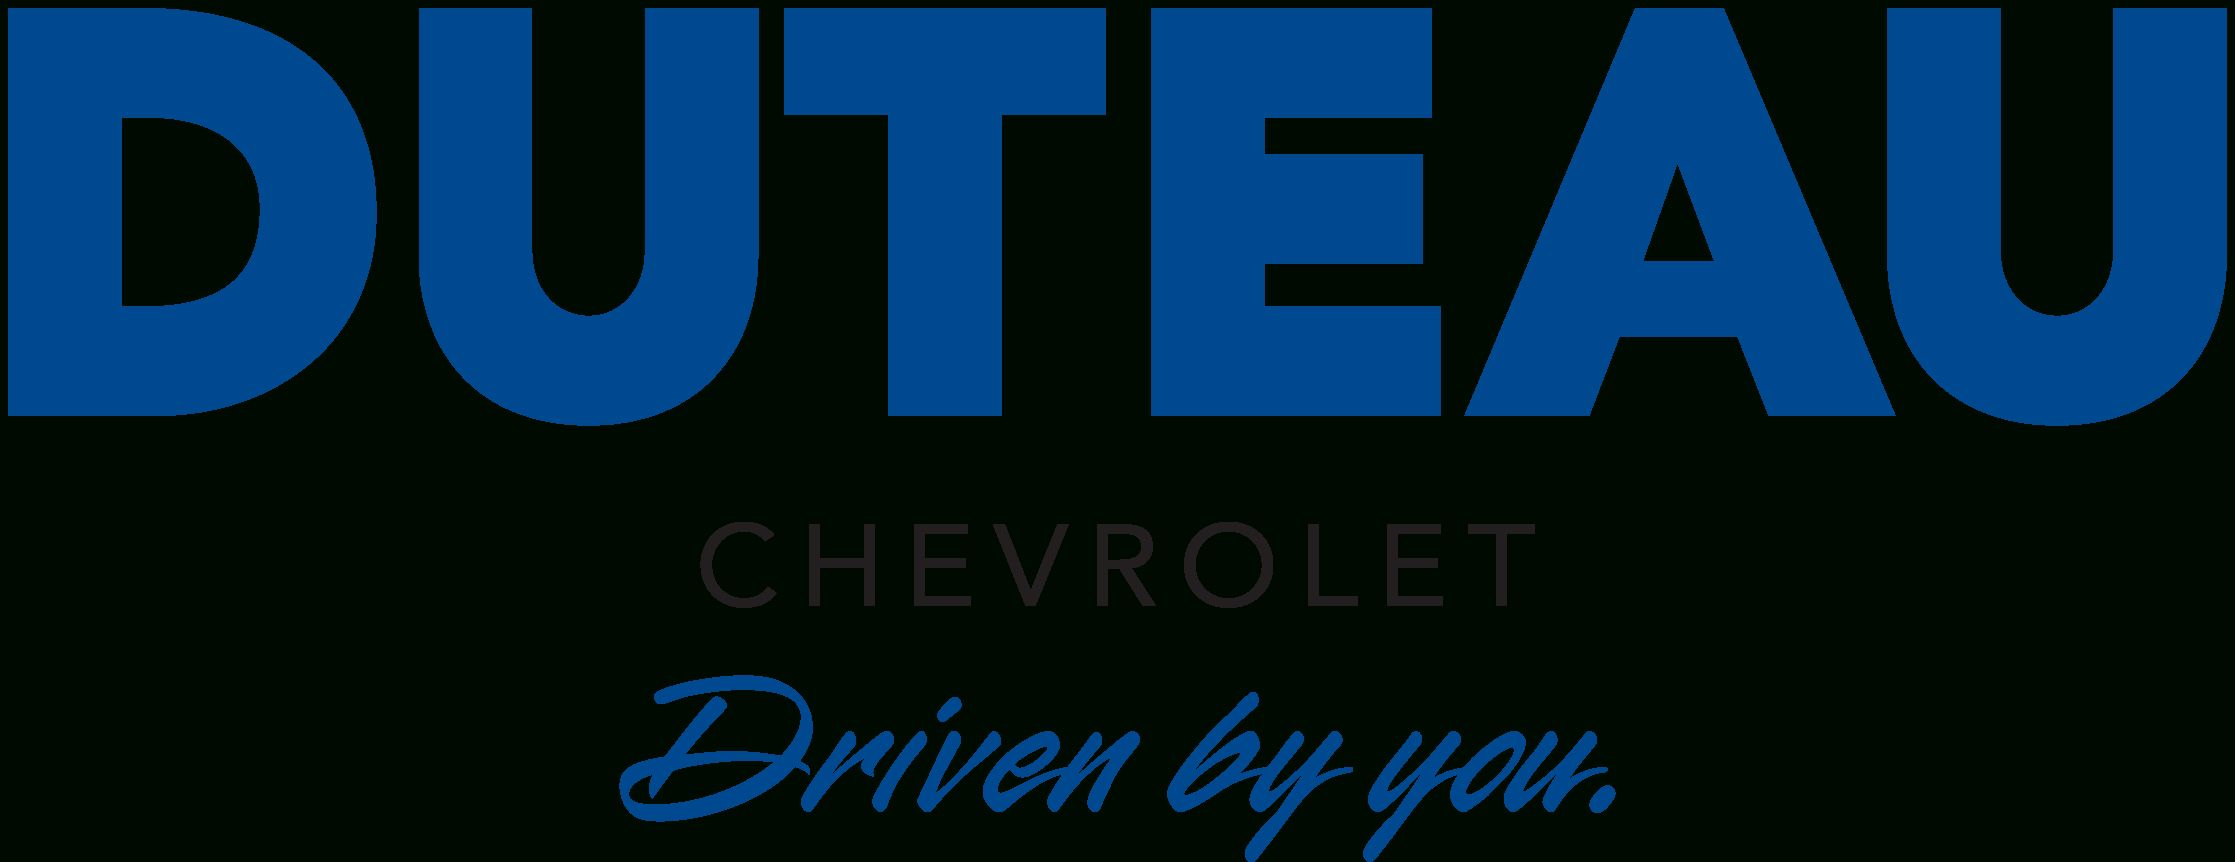 Wonderful Duteau Chevrolet Lincoln Ne   Http://carenara.com/duteau Chevrolet Lincoln  Ne 7948.html Duteau Chevrolet Amp; Subaru | New Amp; Used Chevrolet Cars,  ...